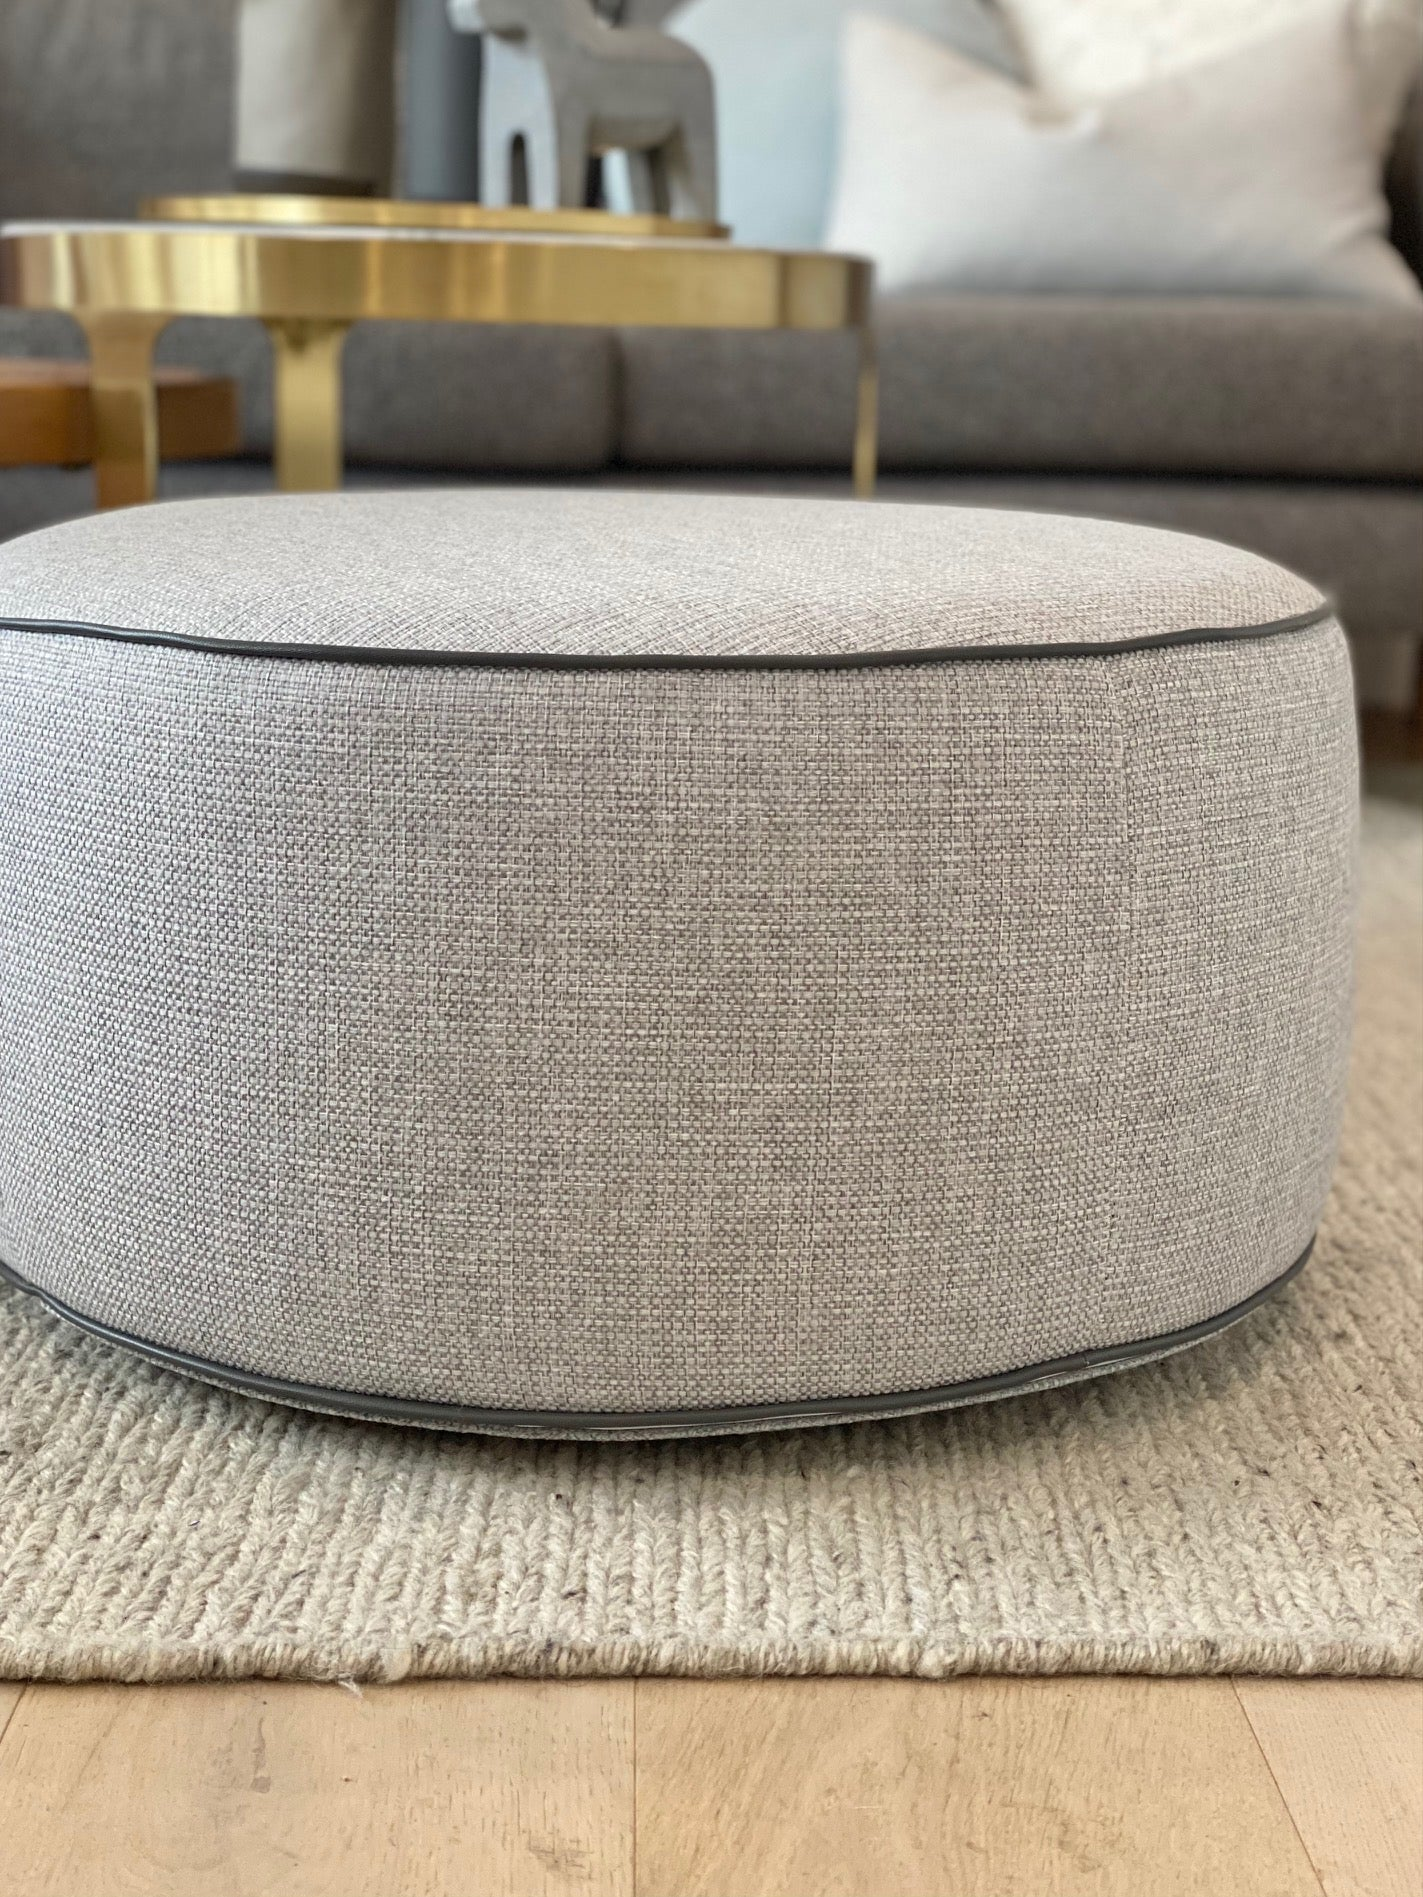 norsu interiors Bespoke Ottoman with Exclusive Charcoal Leather Piping (1469802152020)